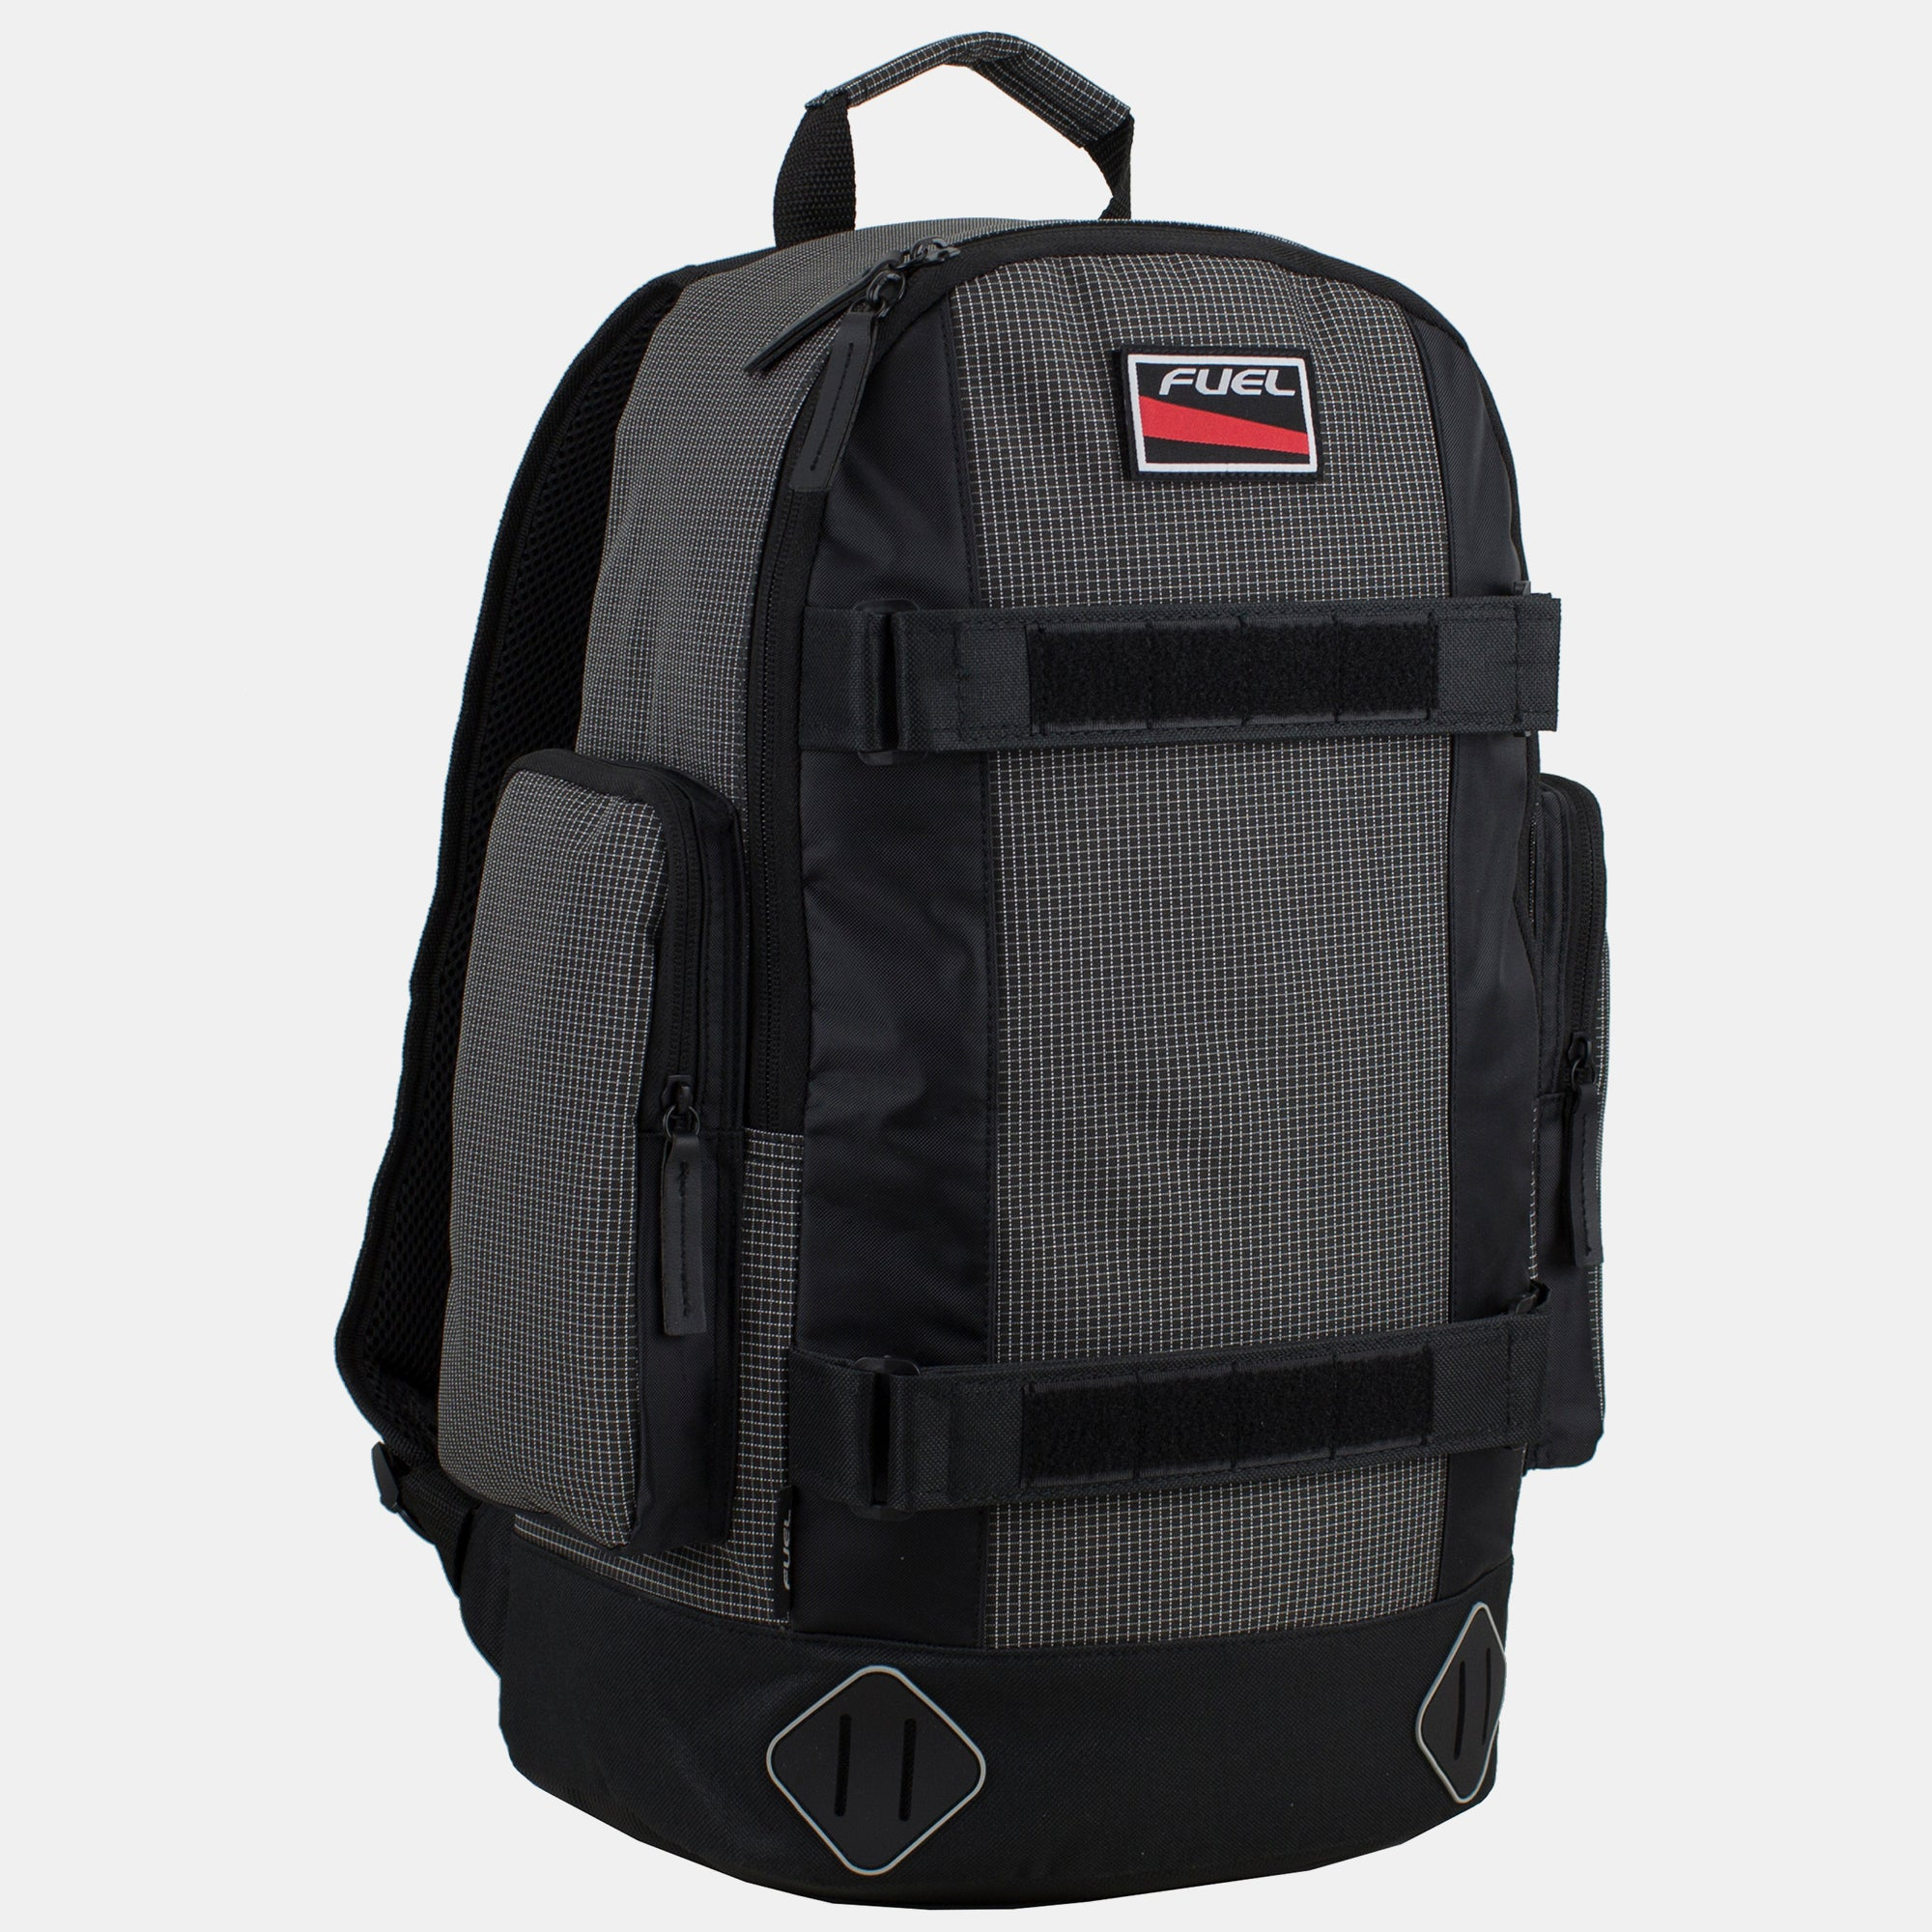 Fuel Pro Skater Backpack With Adjustable Dual Straps